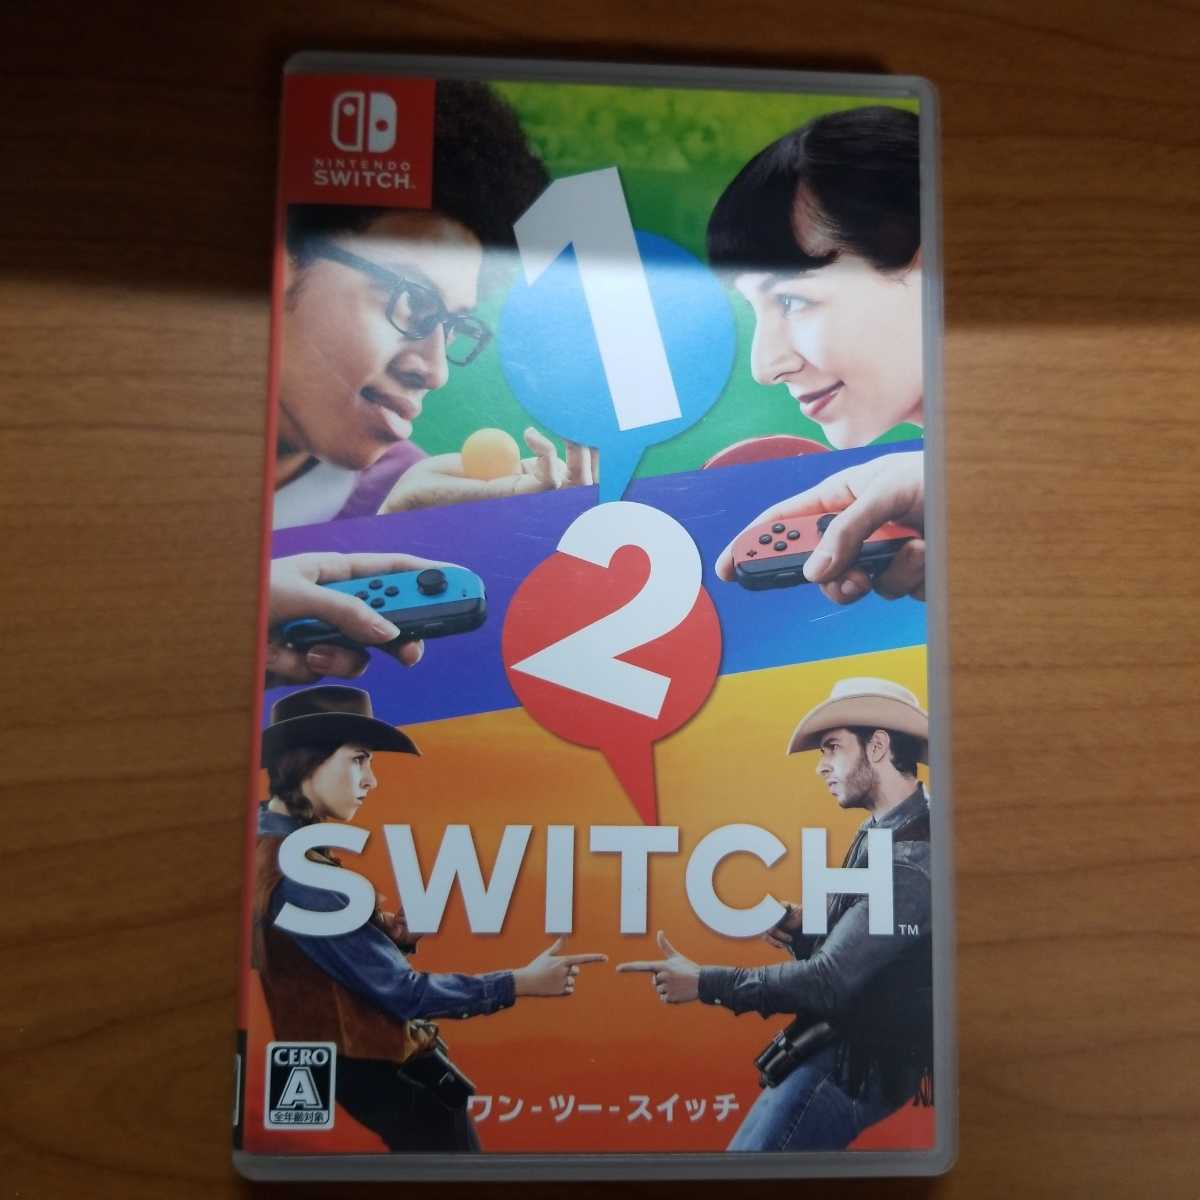 Switch 1-2-Switch Nintendo Switch ワンツースイッチ Nintendo ワン・ツー・スイッチ ニンテンドースイッチ ソフト 送料無料